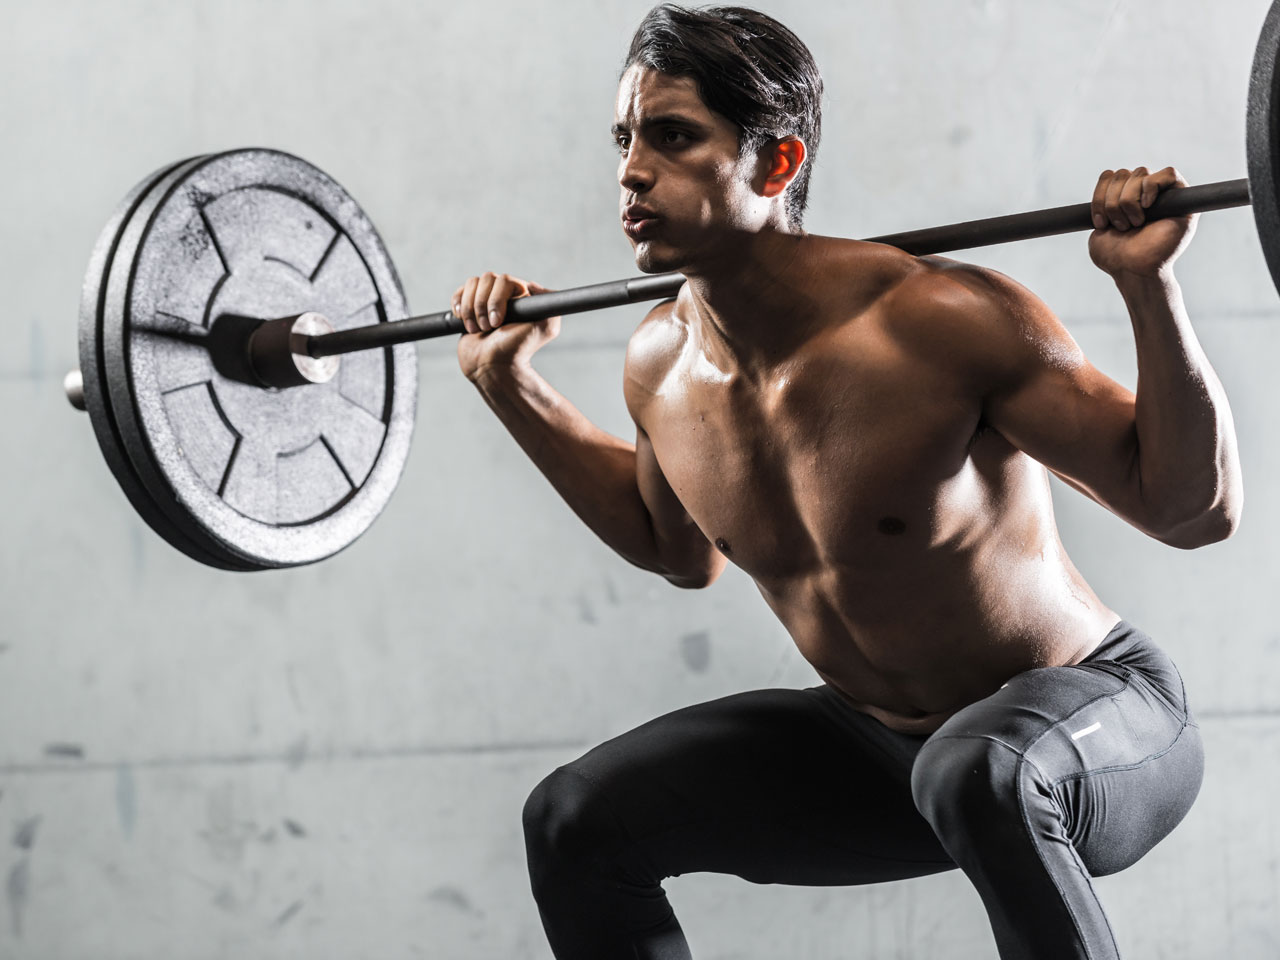 Get Stronger: 7 Reasons to Never Neglect Squats